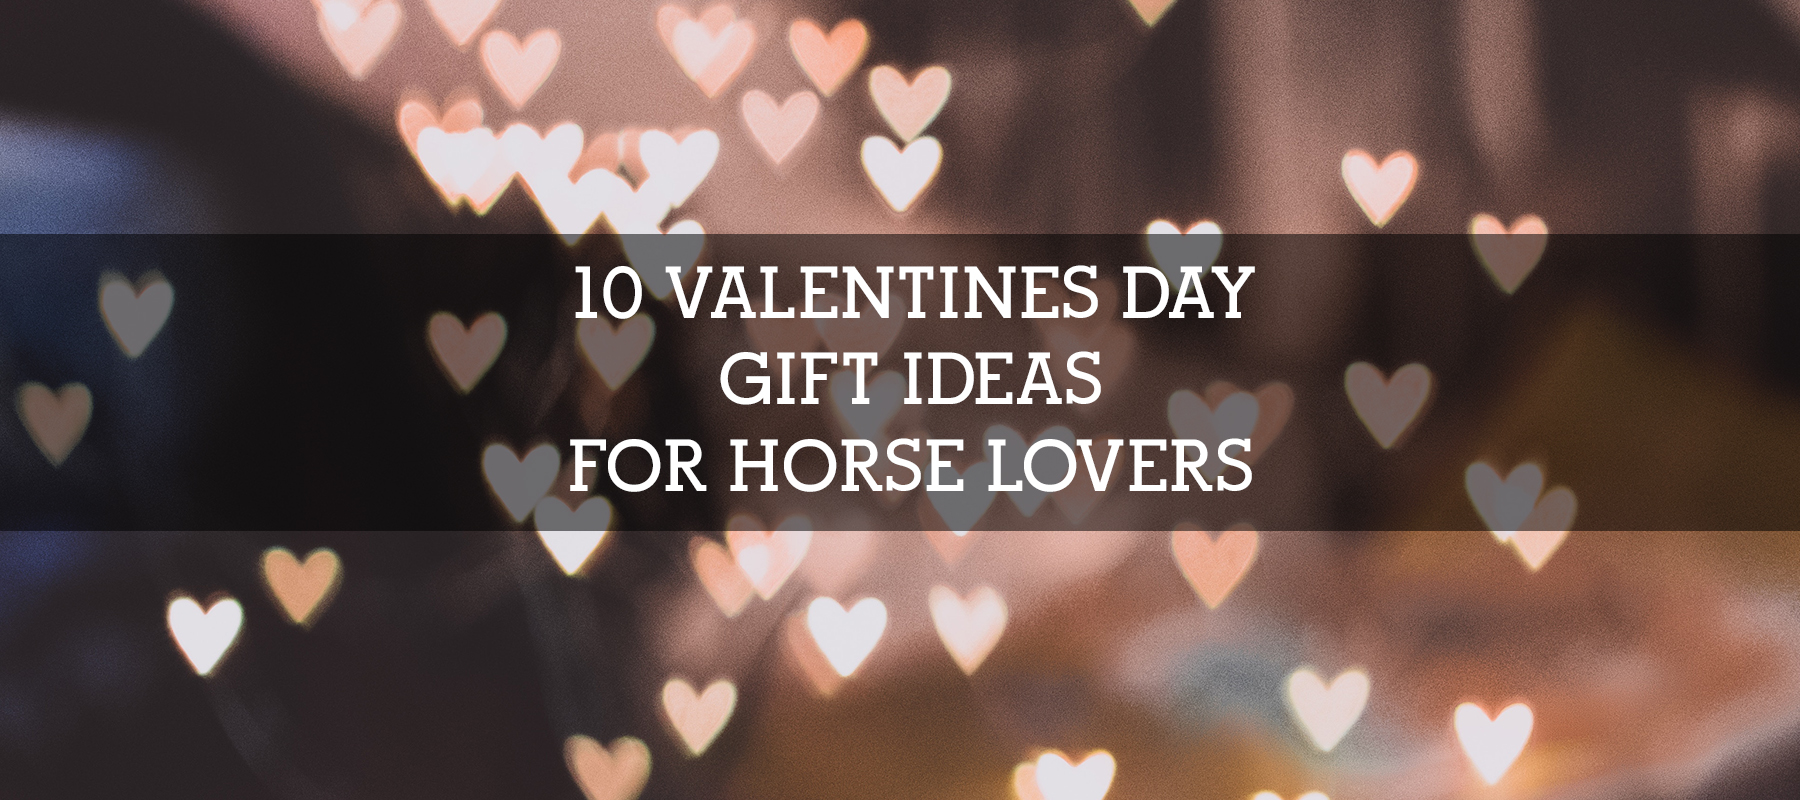 10 VALENTINES DAY GIFT IDEAS FOR HORSE LOVERS